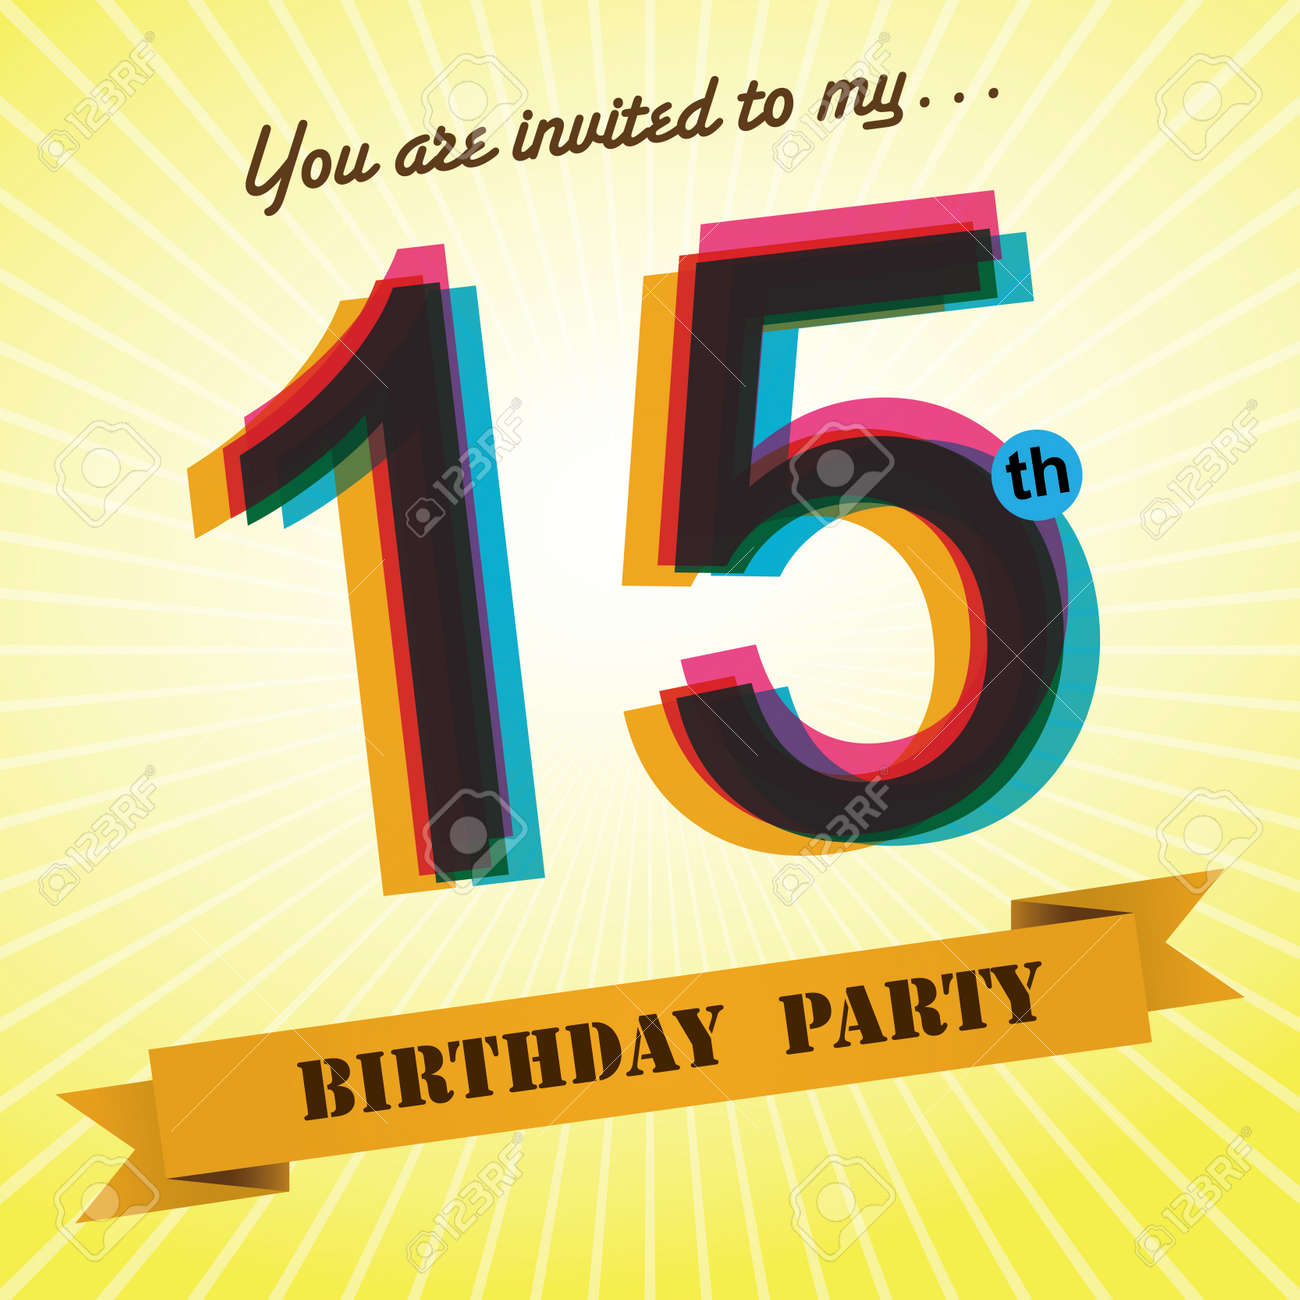 15th Birthday Party Invite Template Design Retro Style